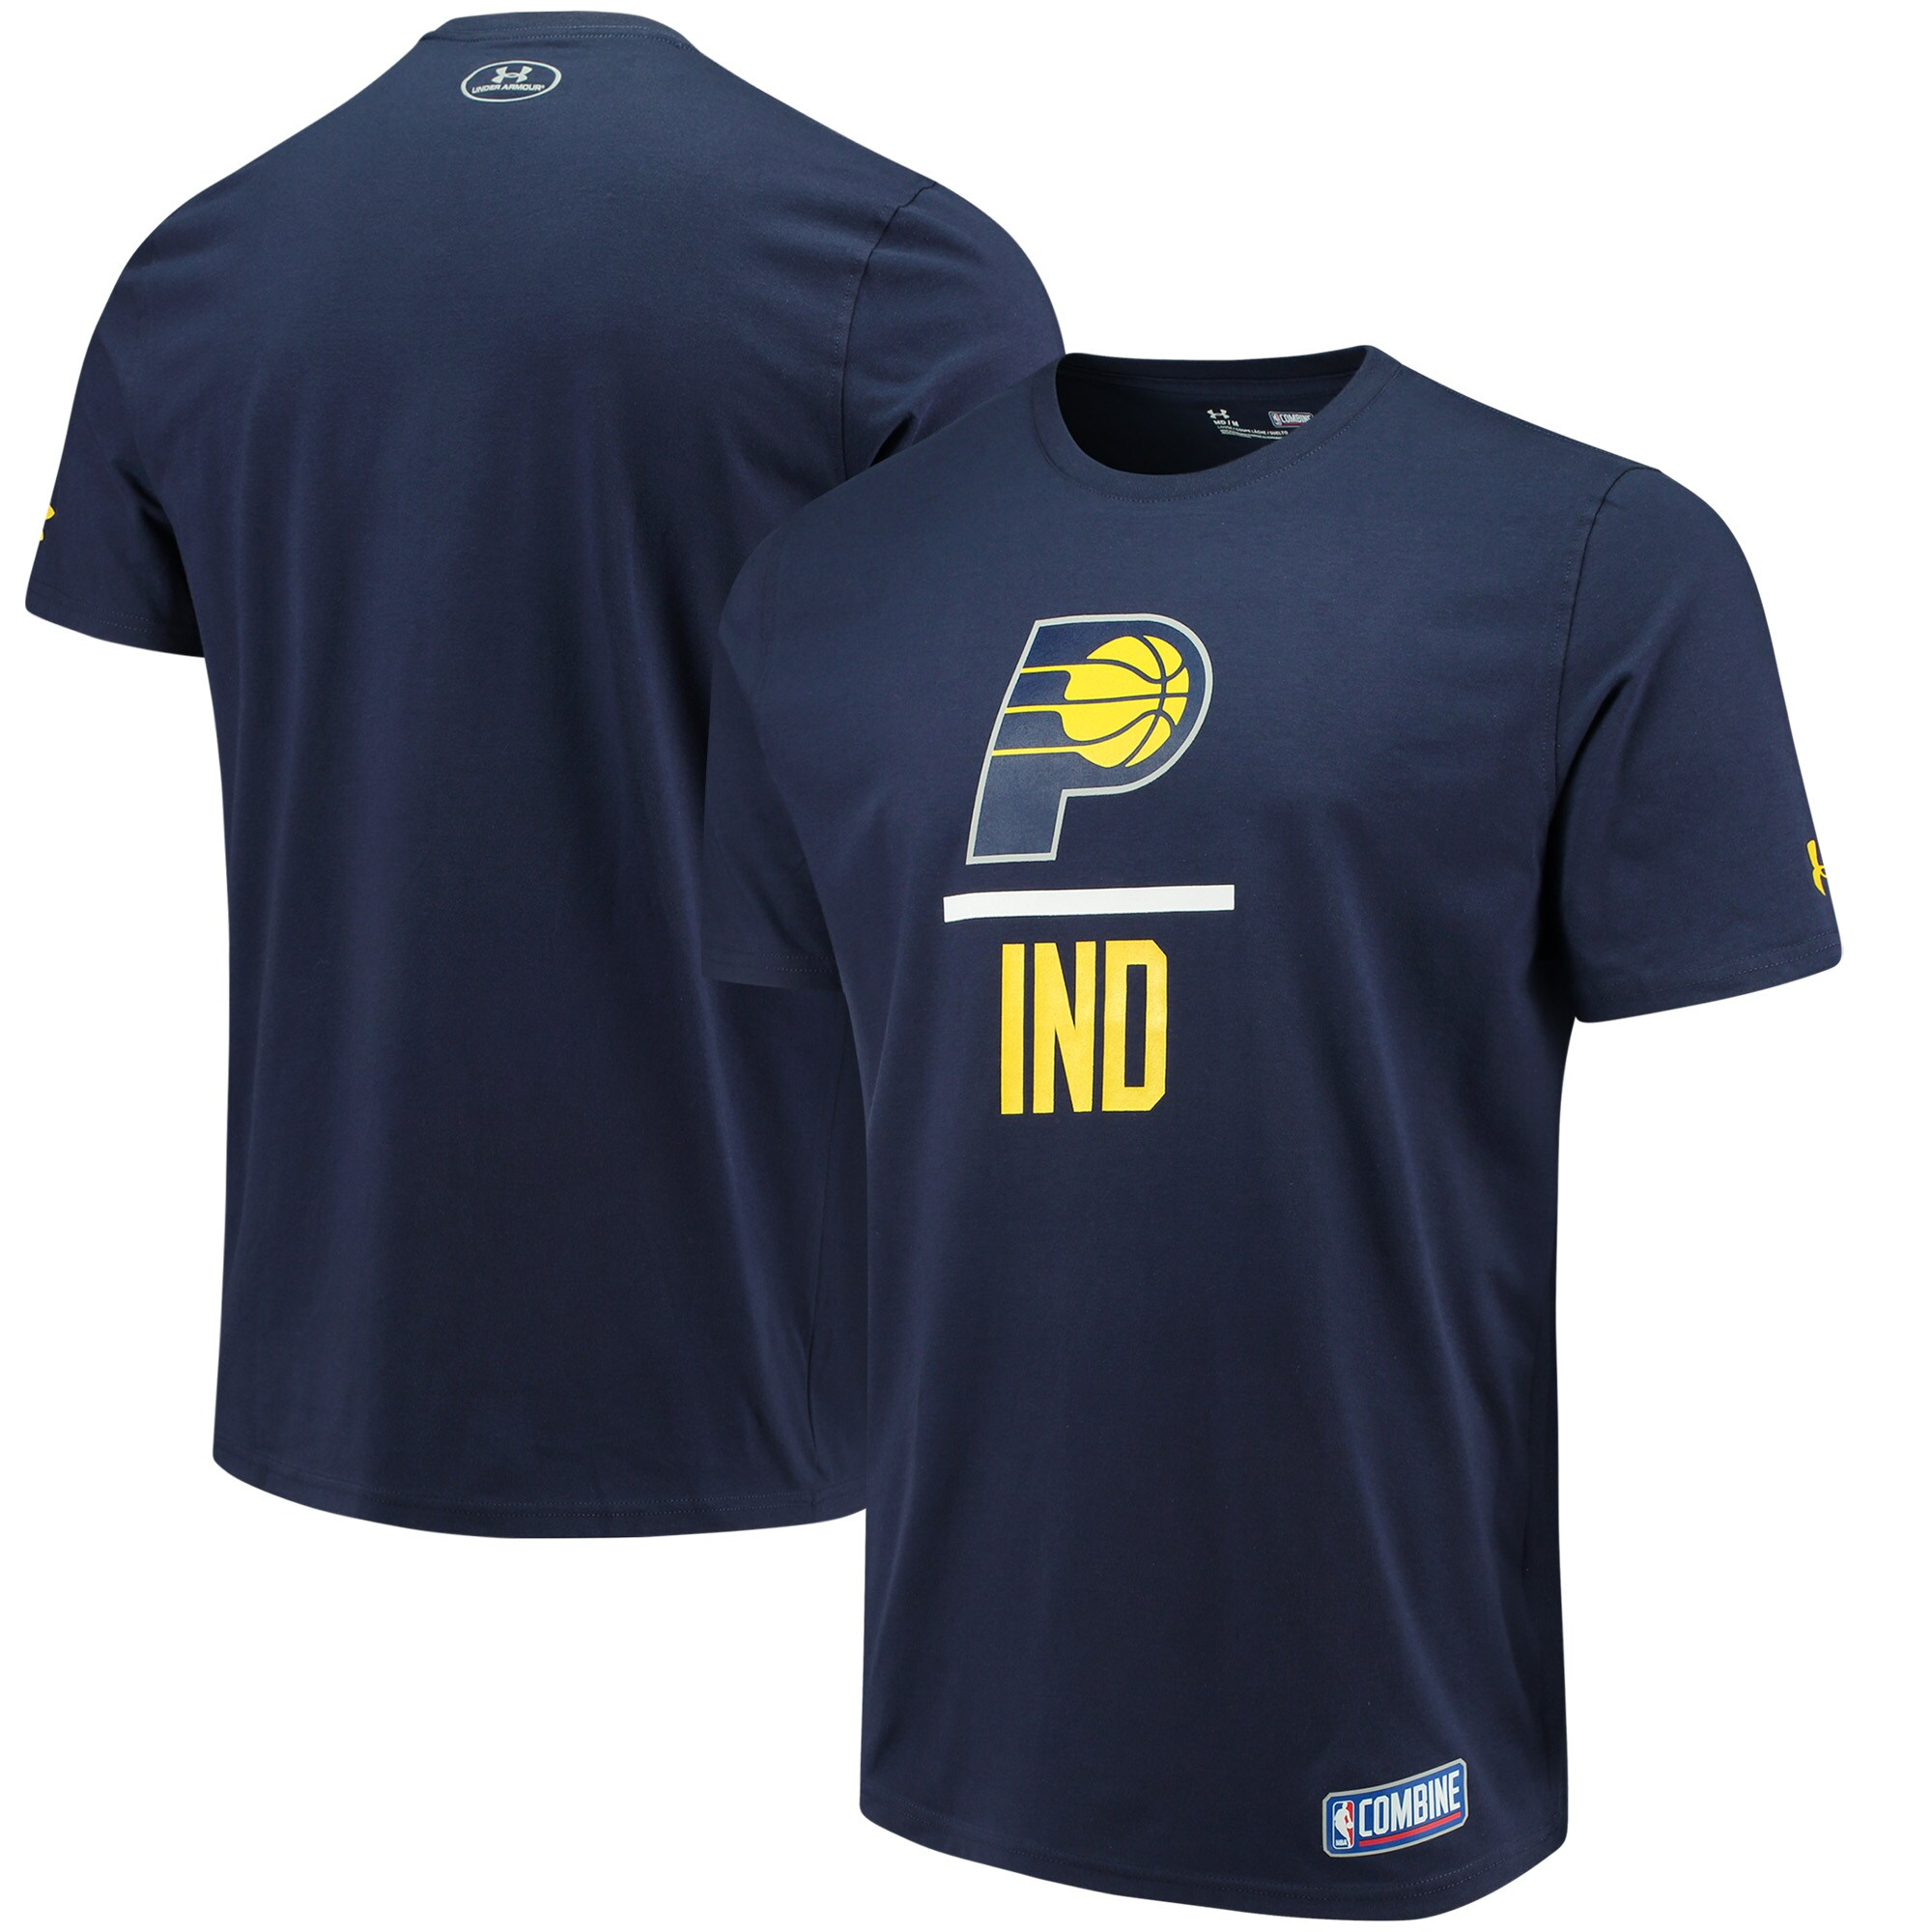 Indiana Pacers Under Armour Lock Up Performance T-Shirt - Navy